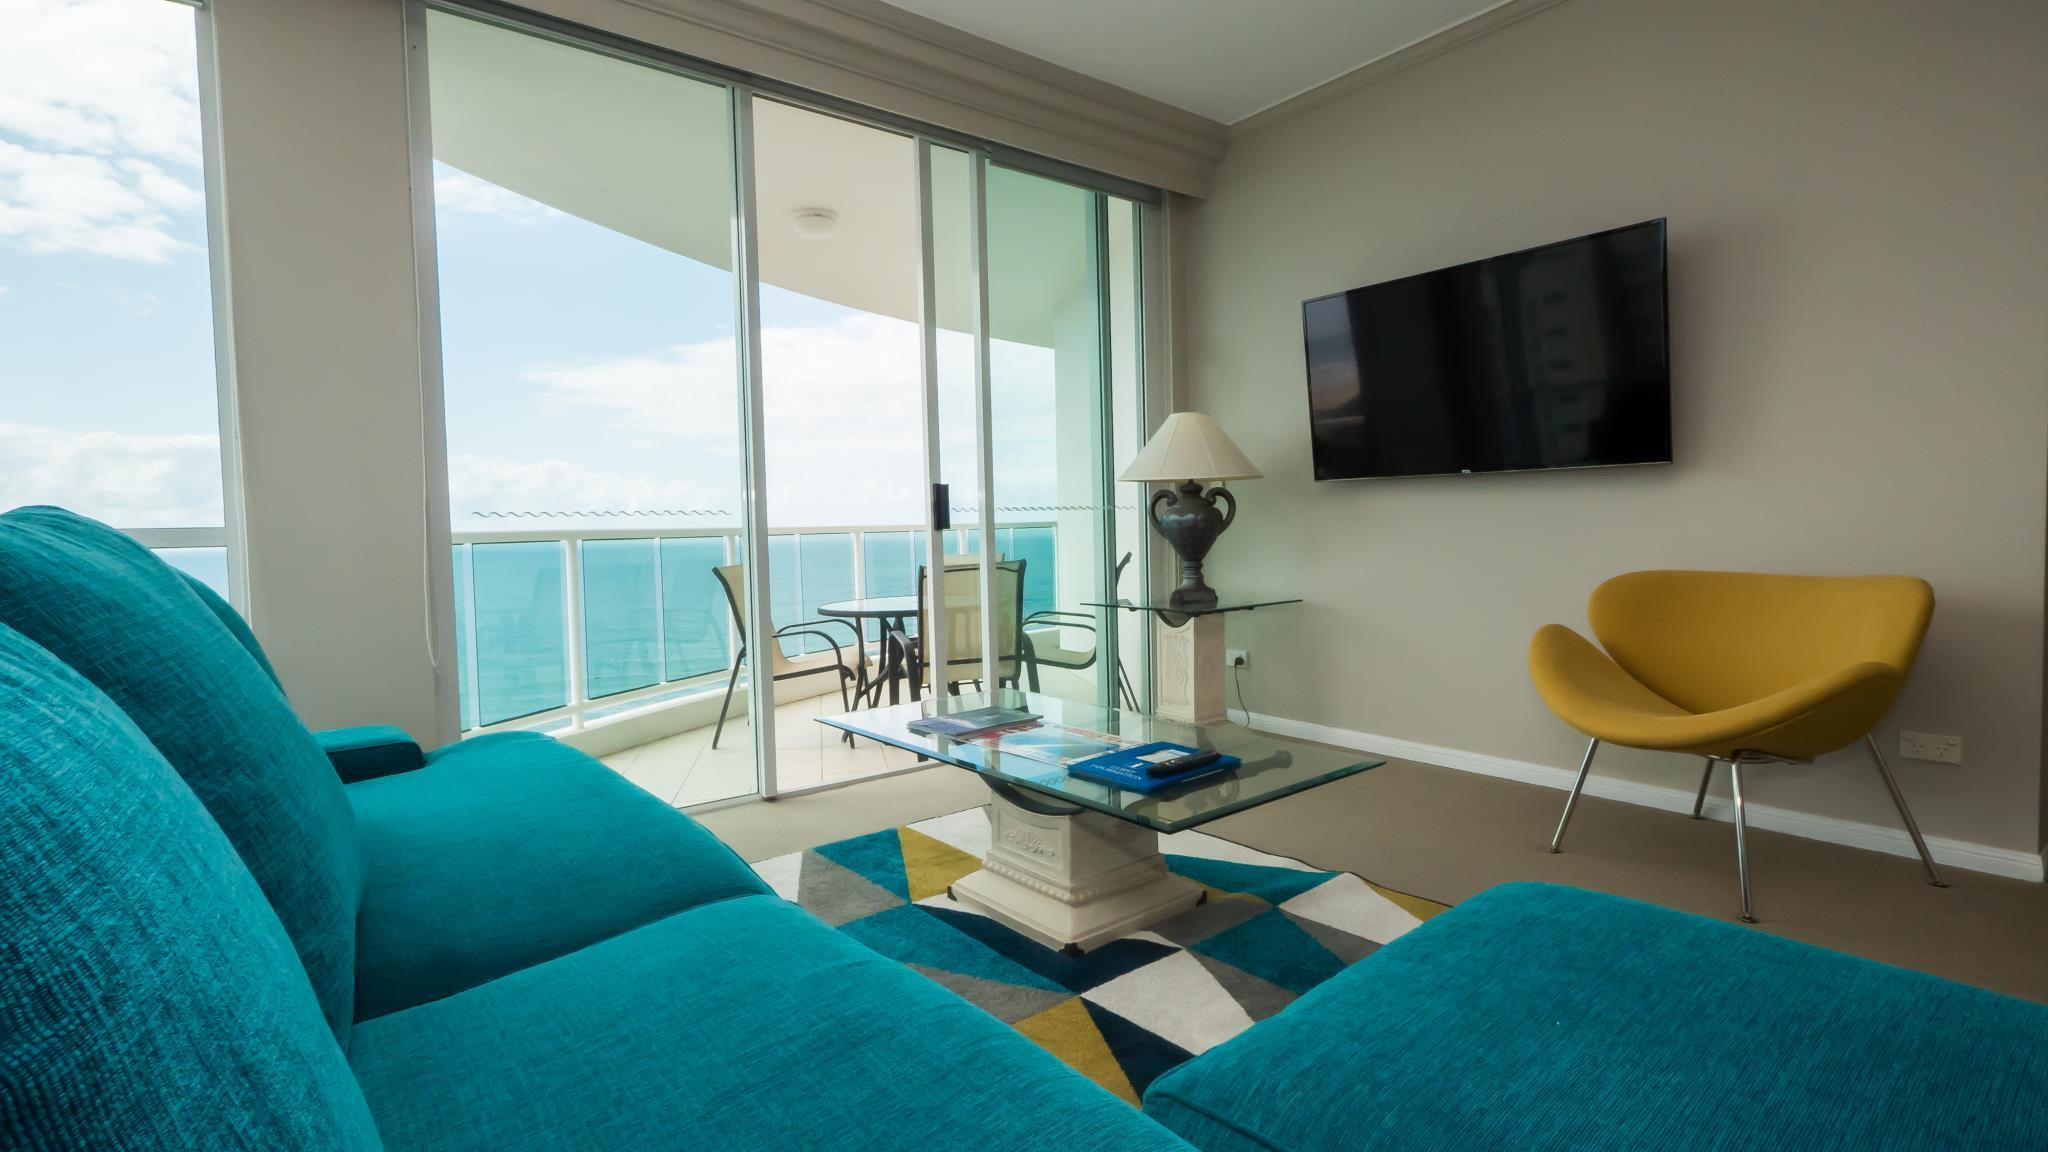 2 Bedroom Ocean View Apartment